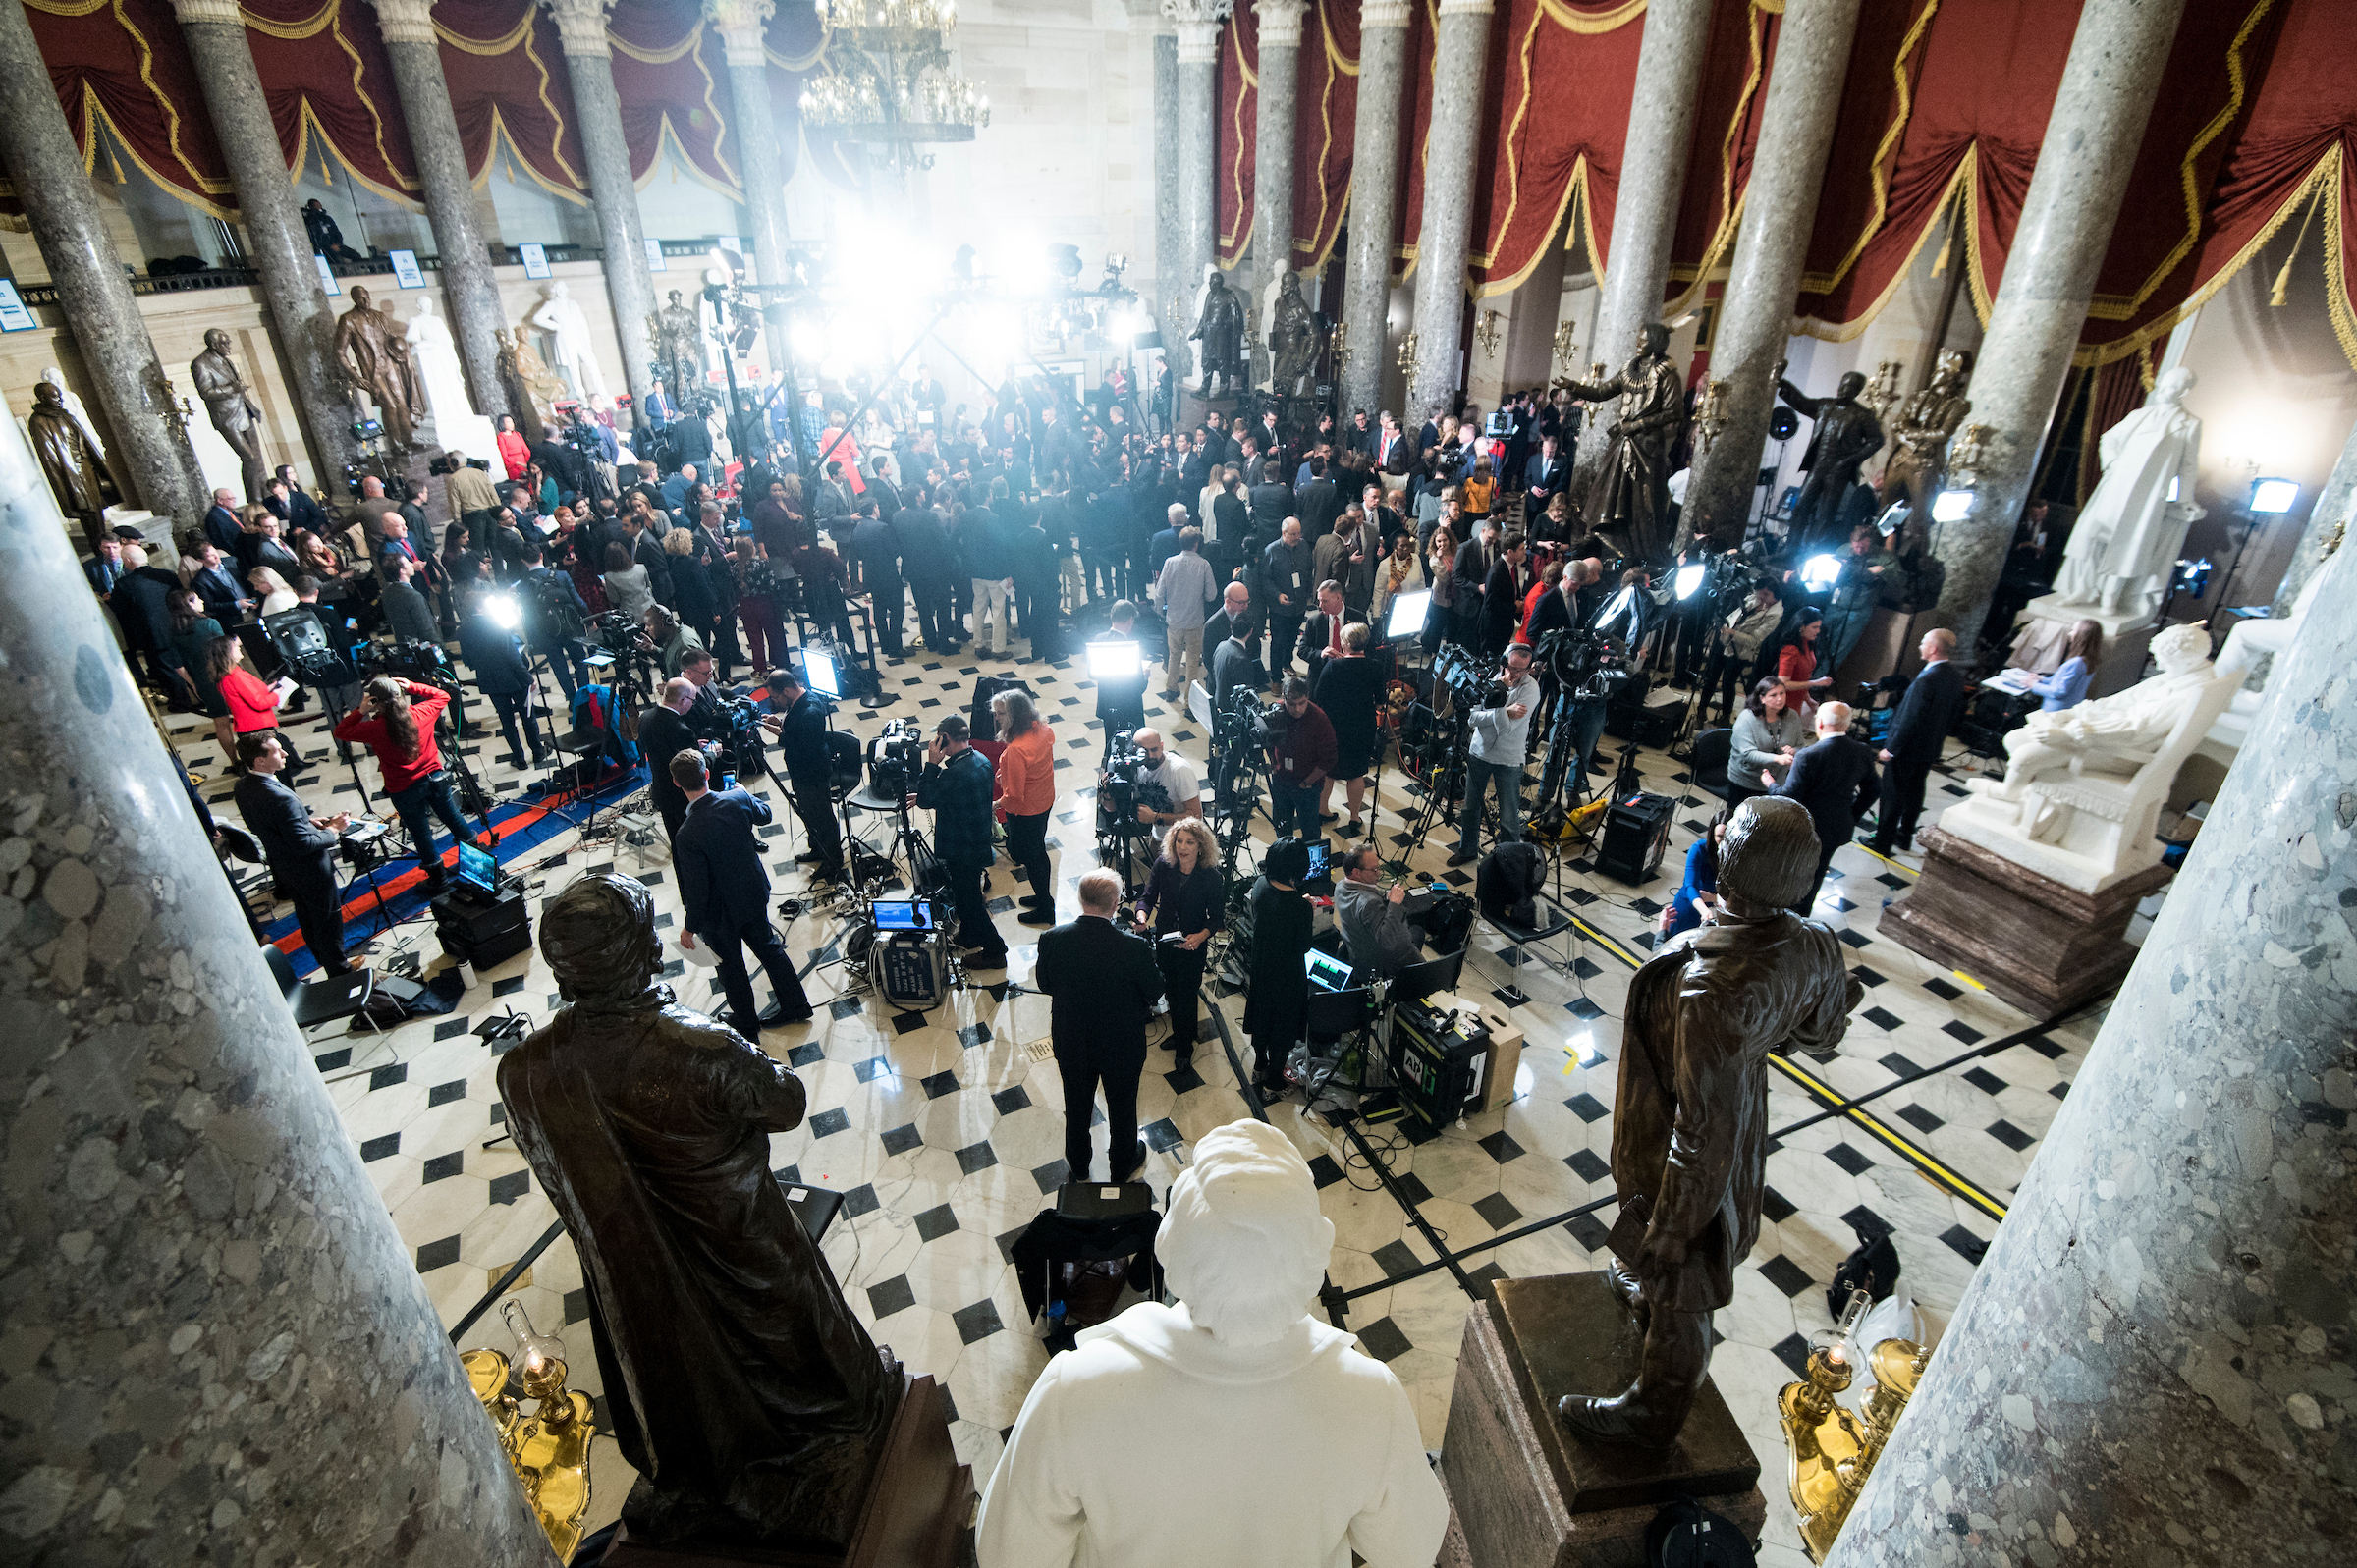 UNITED STATES - FEBRUARY 04: TV news outlets conduct interviews with lawmakers in Statuary Hall following cameras Trump's State of the Union address on Tuesday, February 4, 2020. (Photo By Bill Clark/CQ Roll Call)